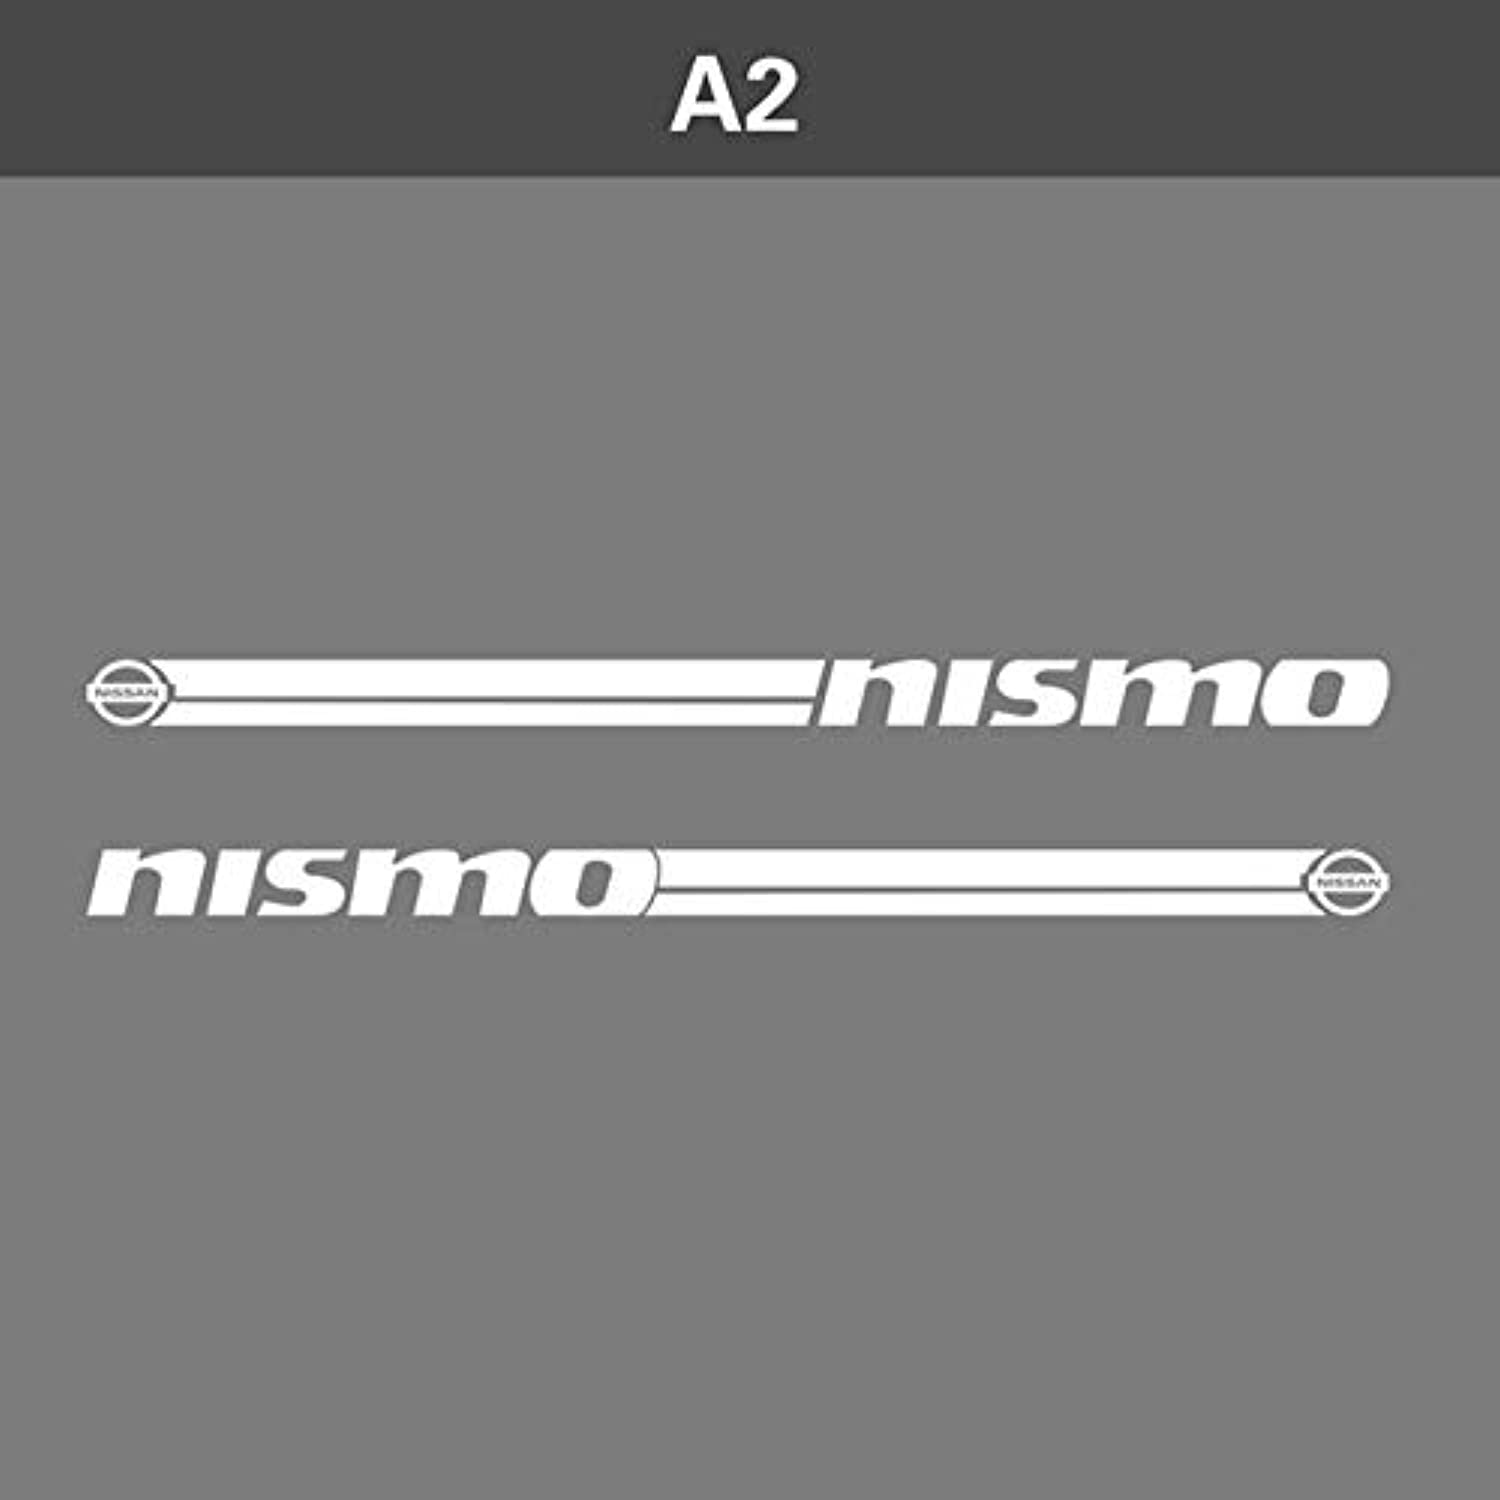 Hot 1 Pair 2 PCS Vinyl Car Styling Side Skirt Sticker Decals Stripe Wraps Body Stickers for Nissan Nismo  (color Name  White)